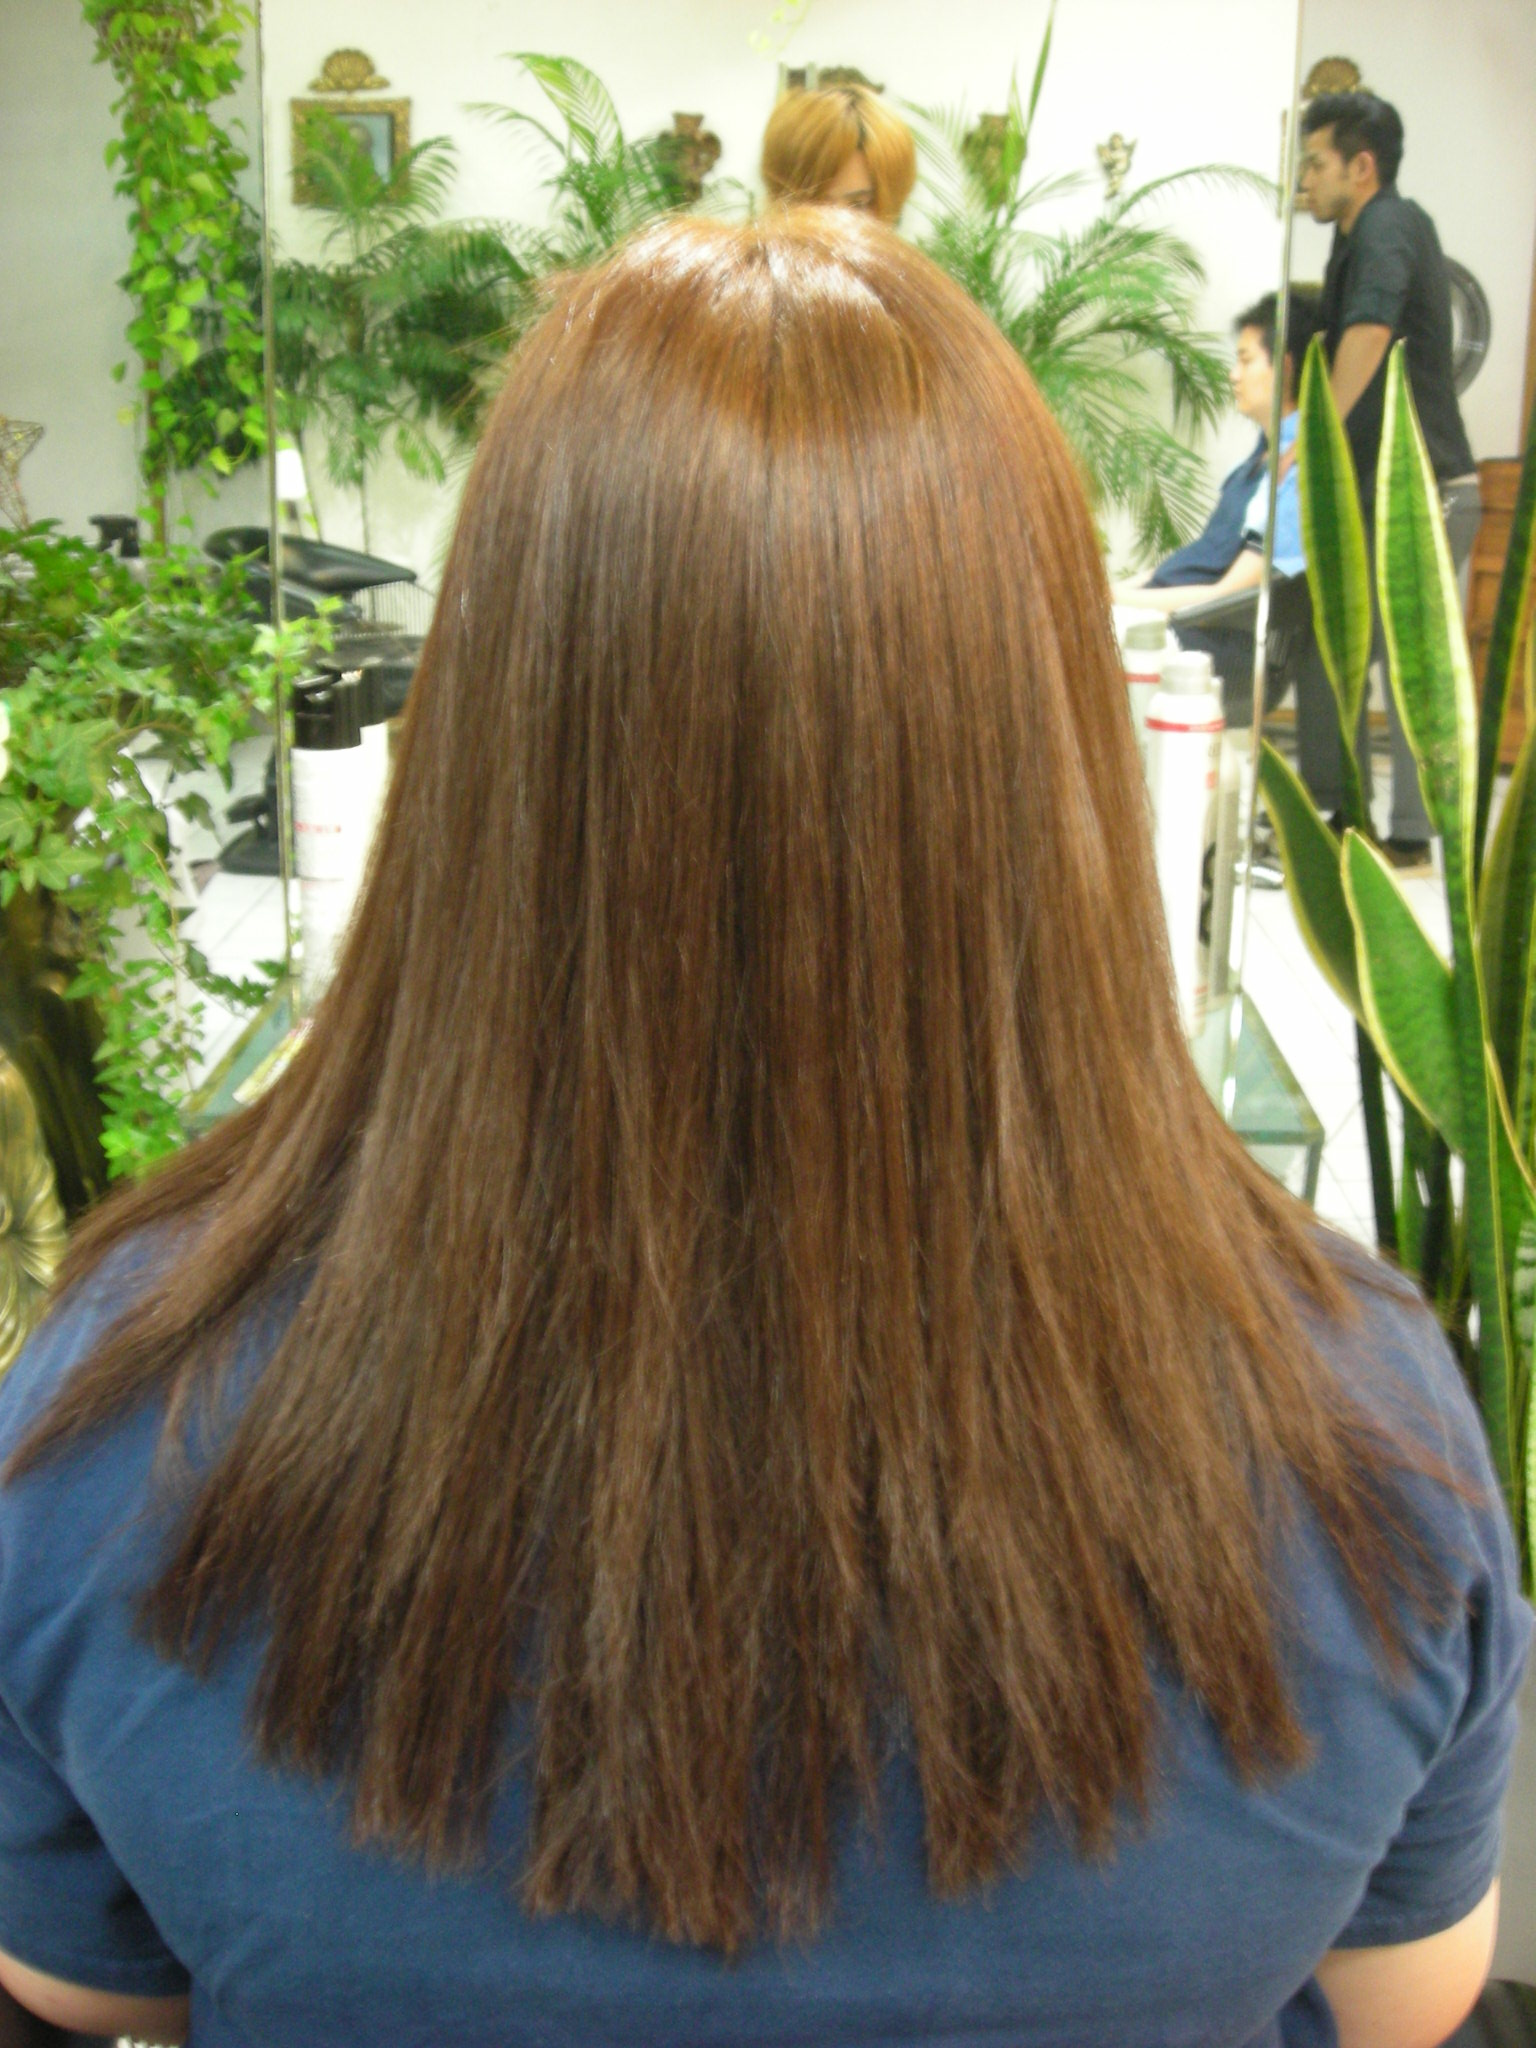 Best japanese straight perm - Japanese Straightening For Melissa